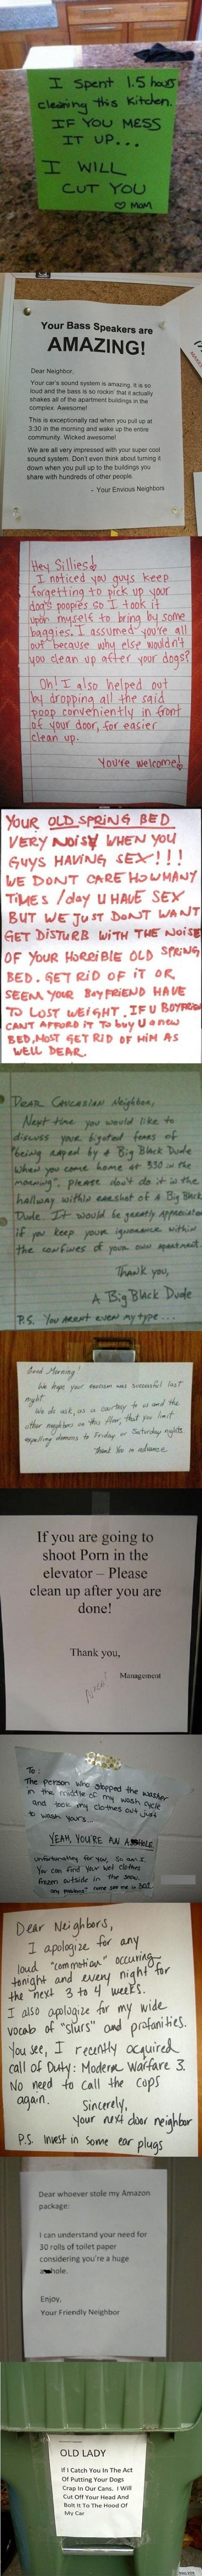 Funny notes, but if someone sent me some of these, I would send them back with the spelling and grammar errors corrected.